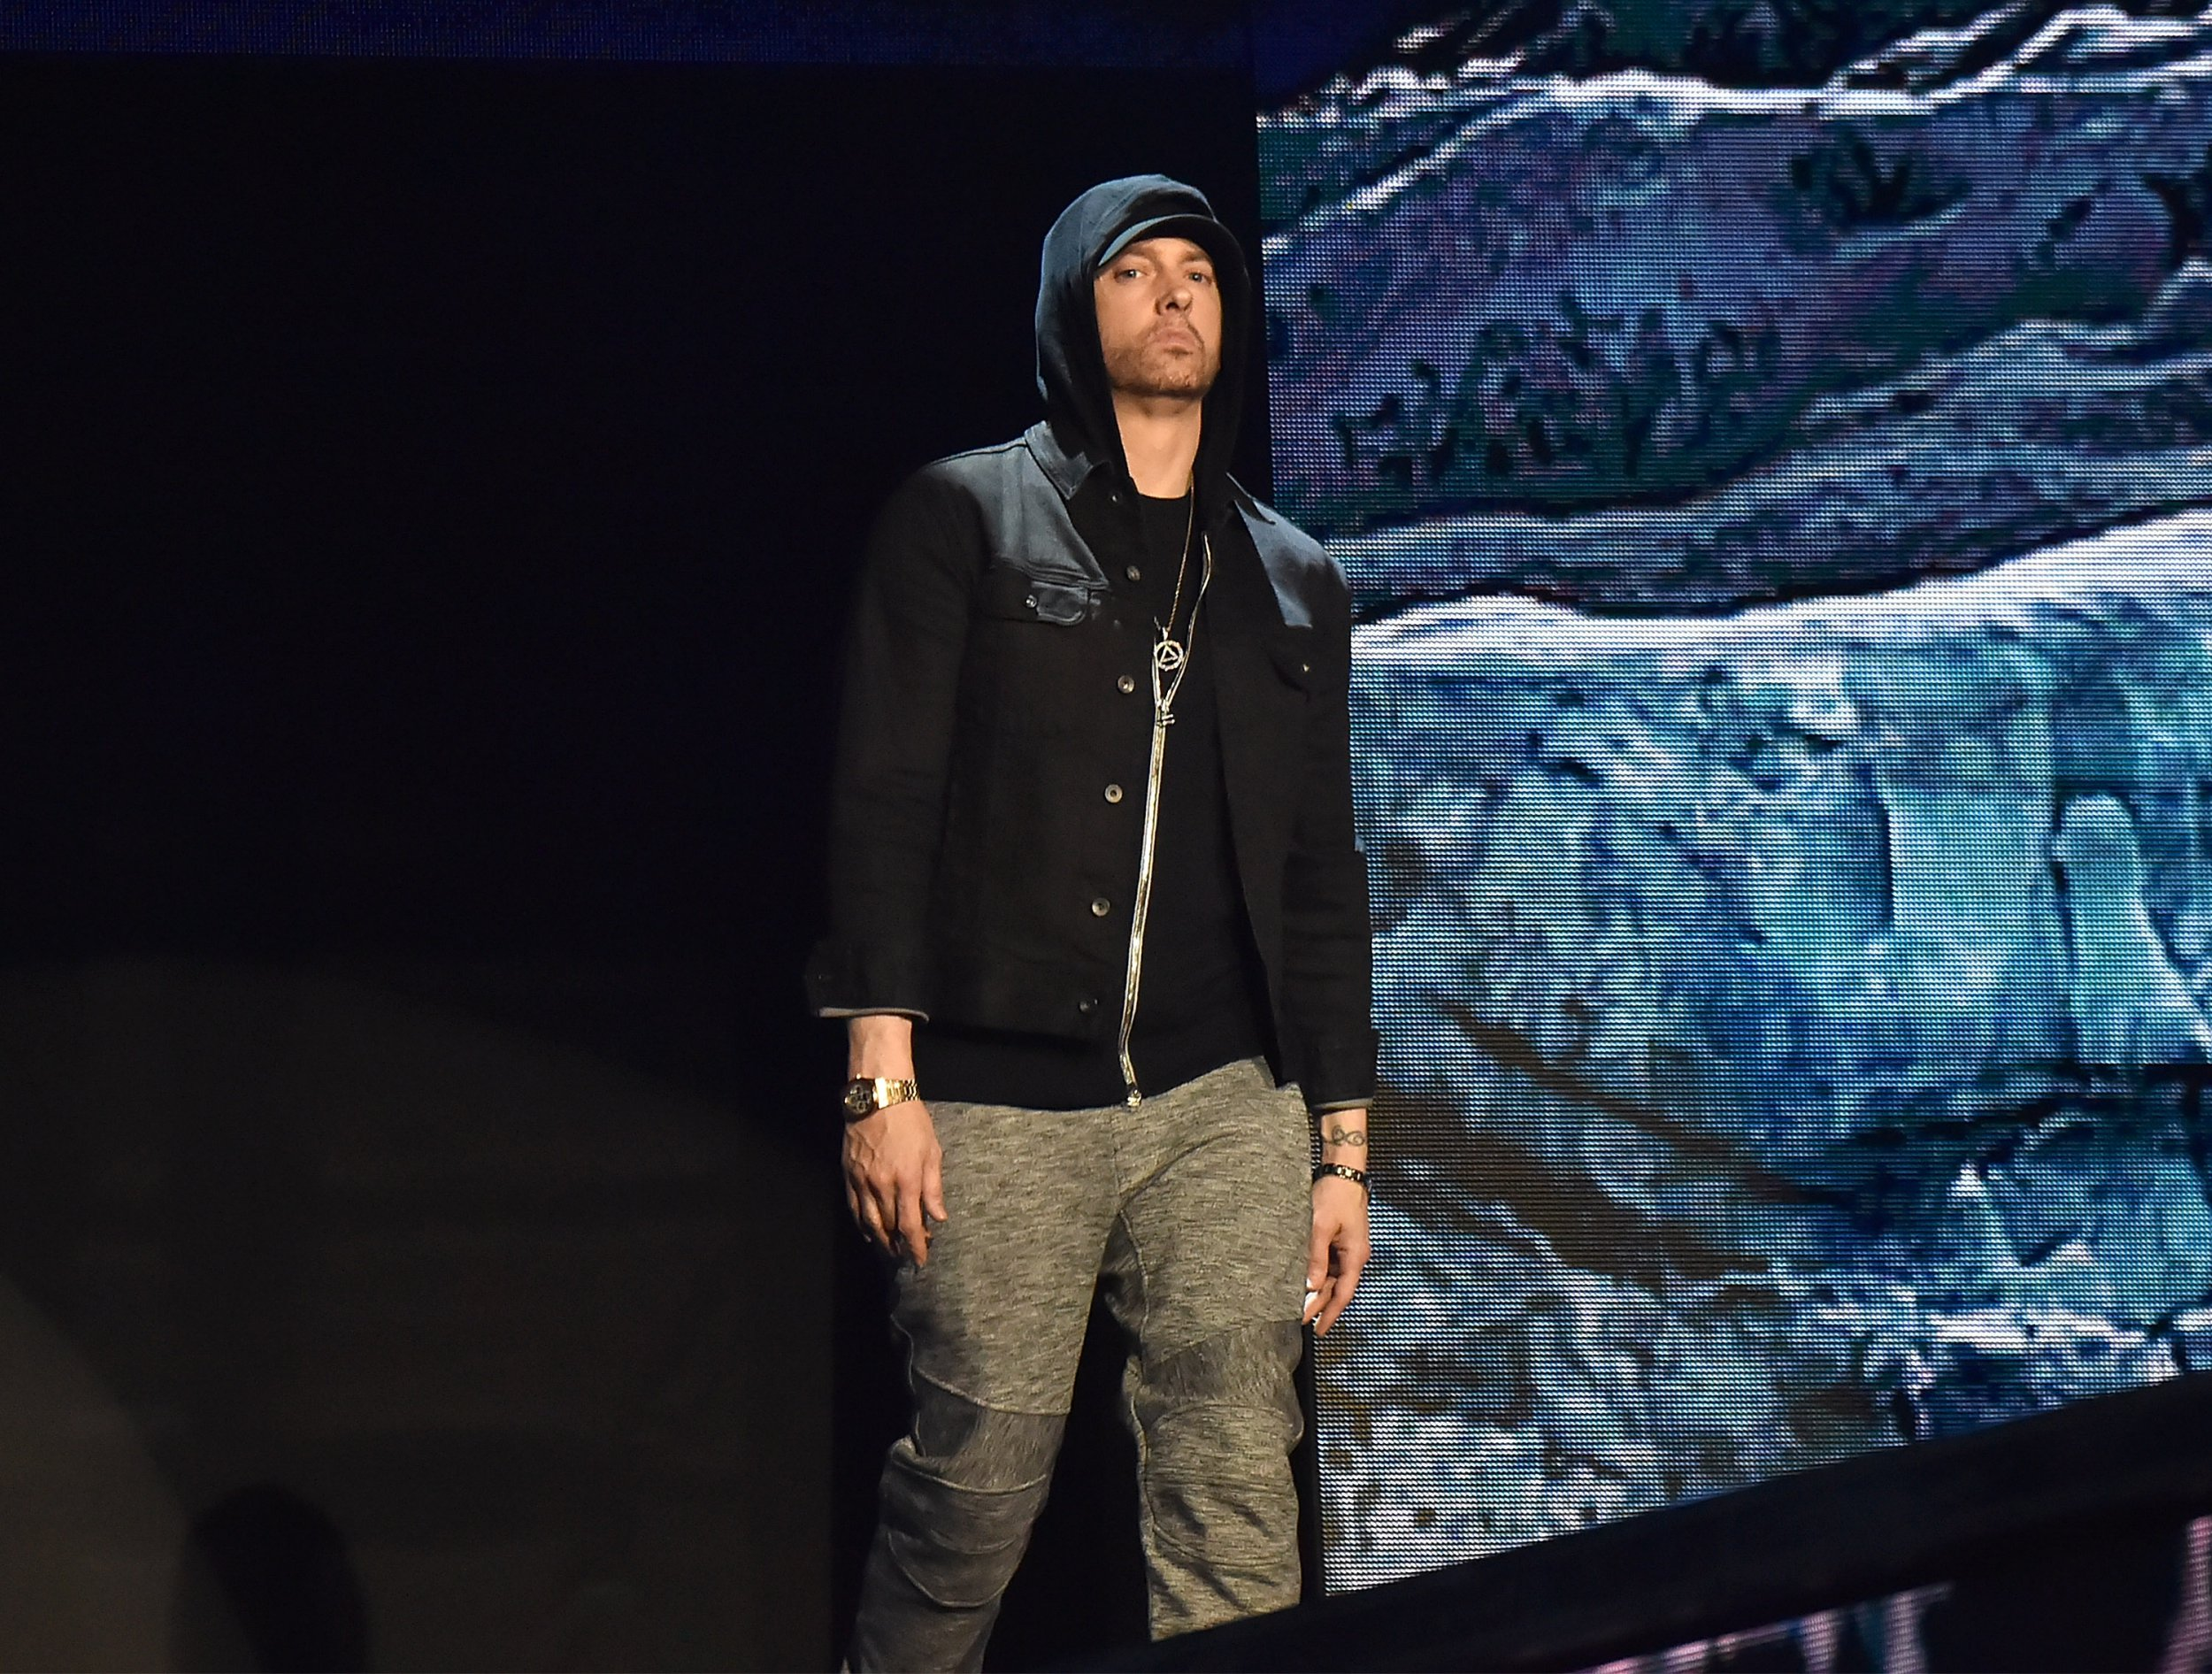 Eminem's comeback album Revival leaks online and it's not getting rave reviews